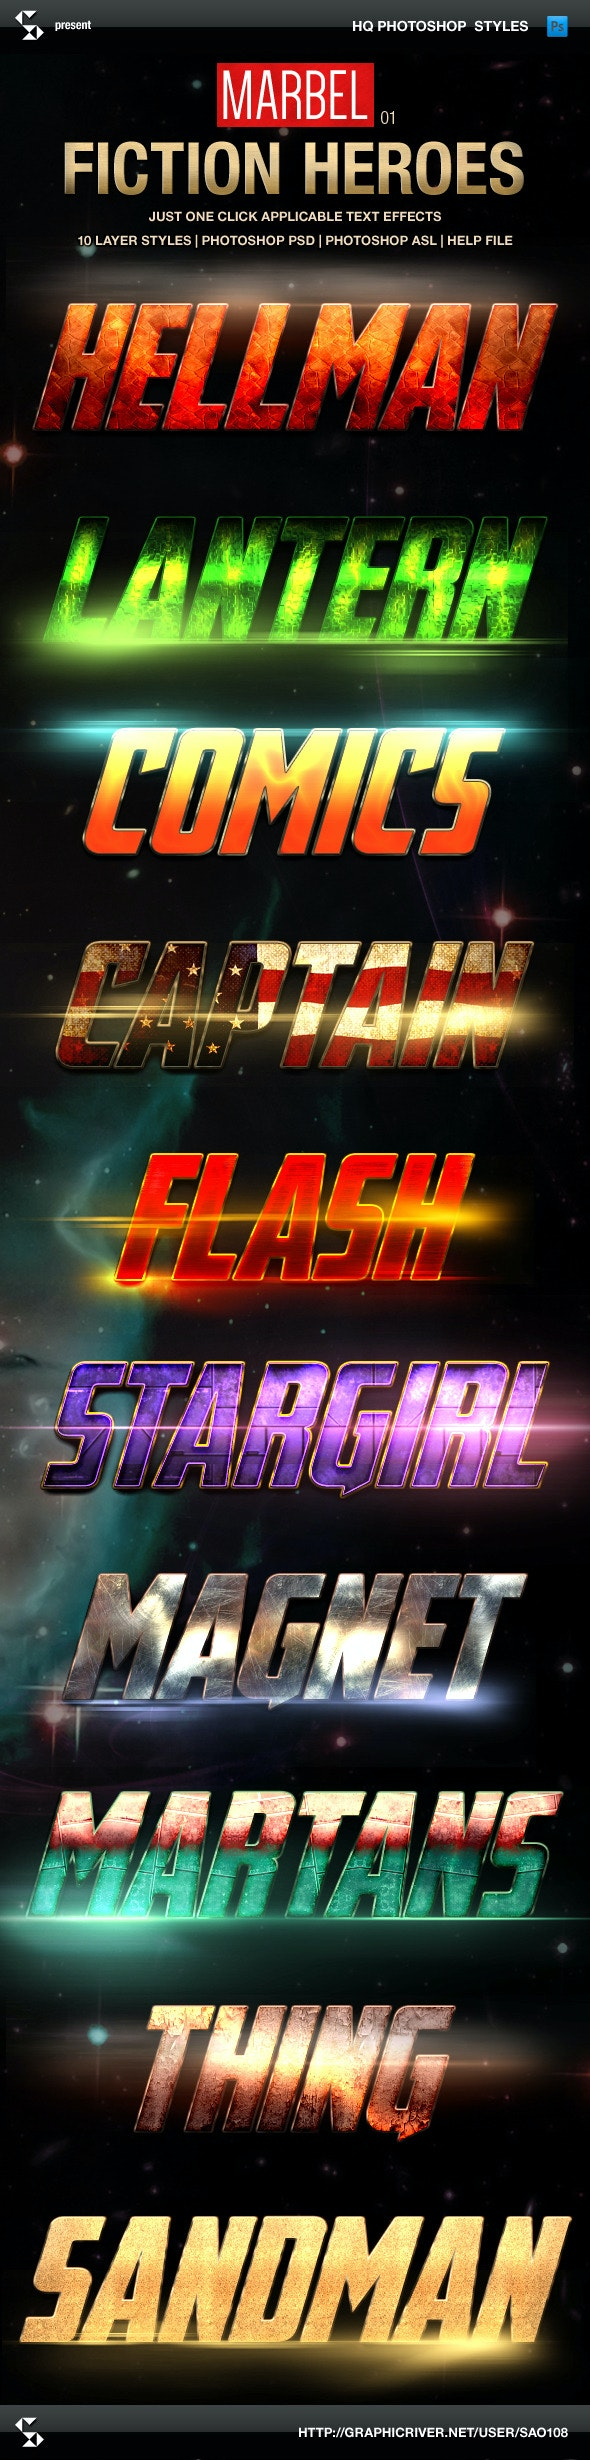 Blockbuster Heroes Style Text Effects 01 - Text Effects Styles